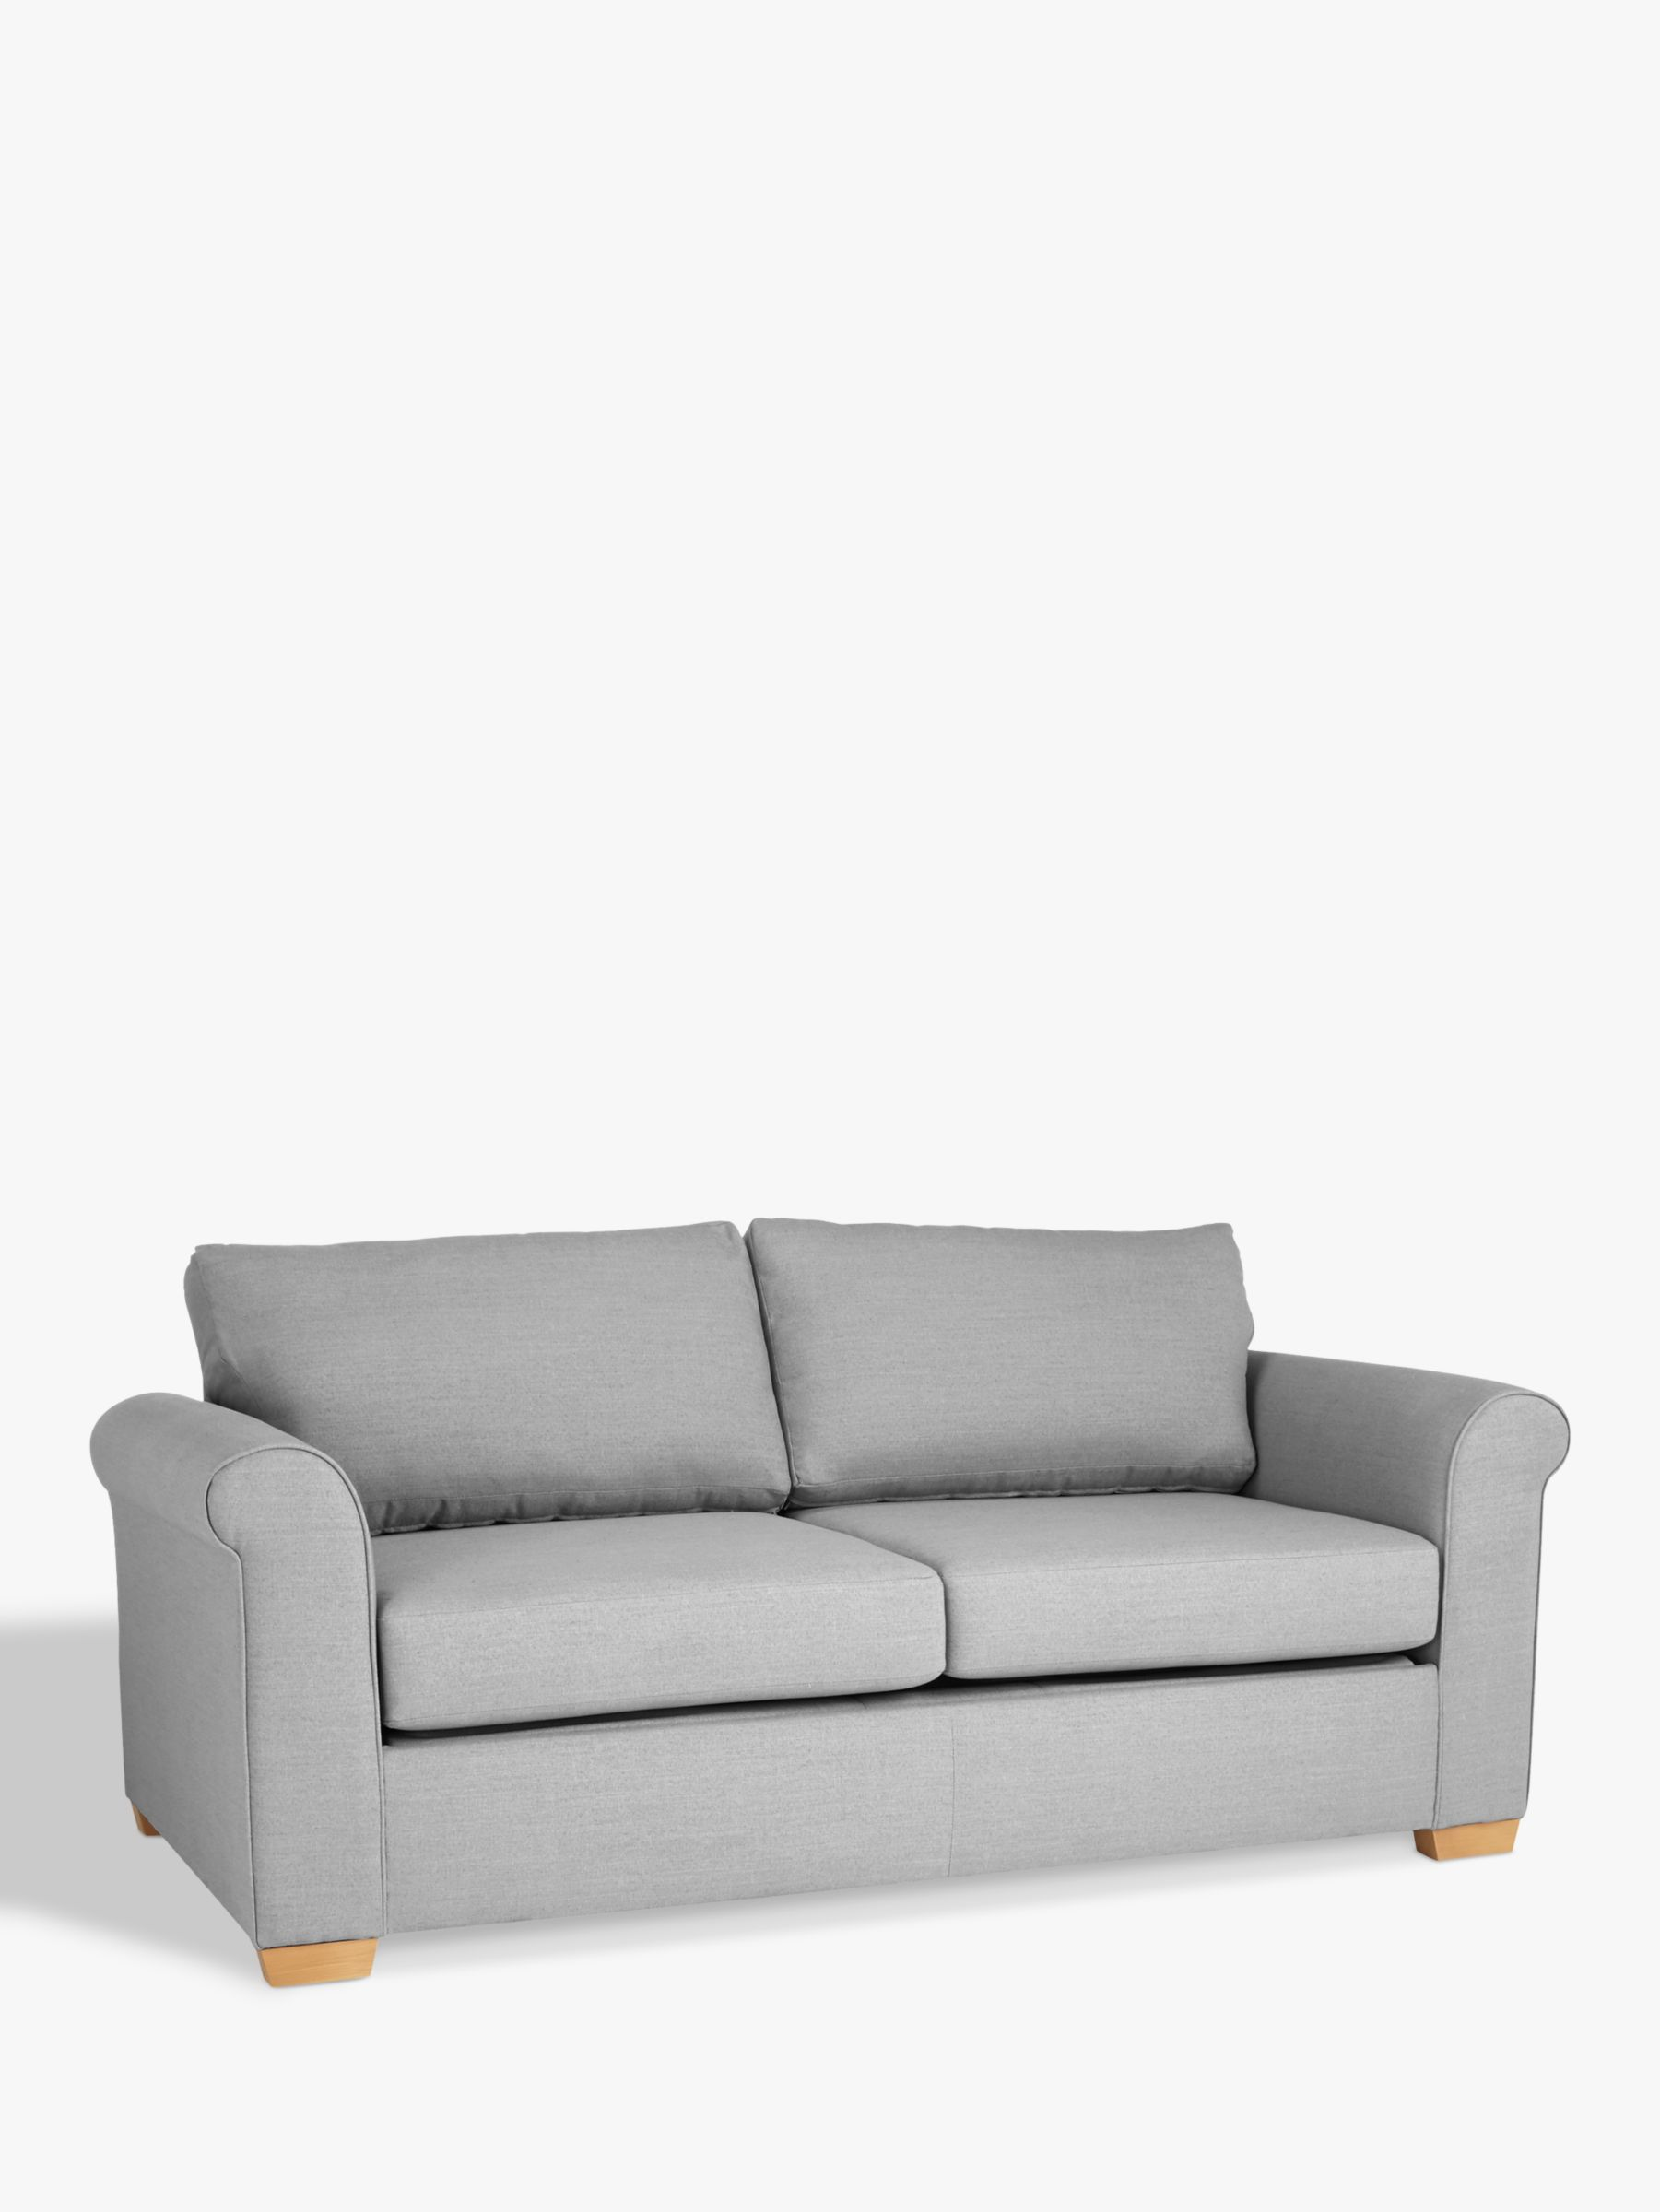 innovation sofa bed gumtree what colour cushions go with white single chair john lewis baci living room